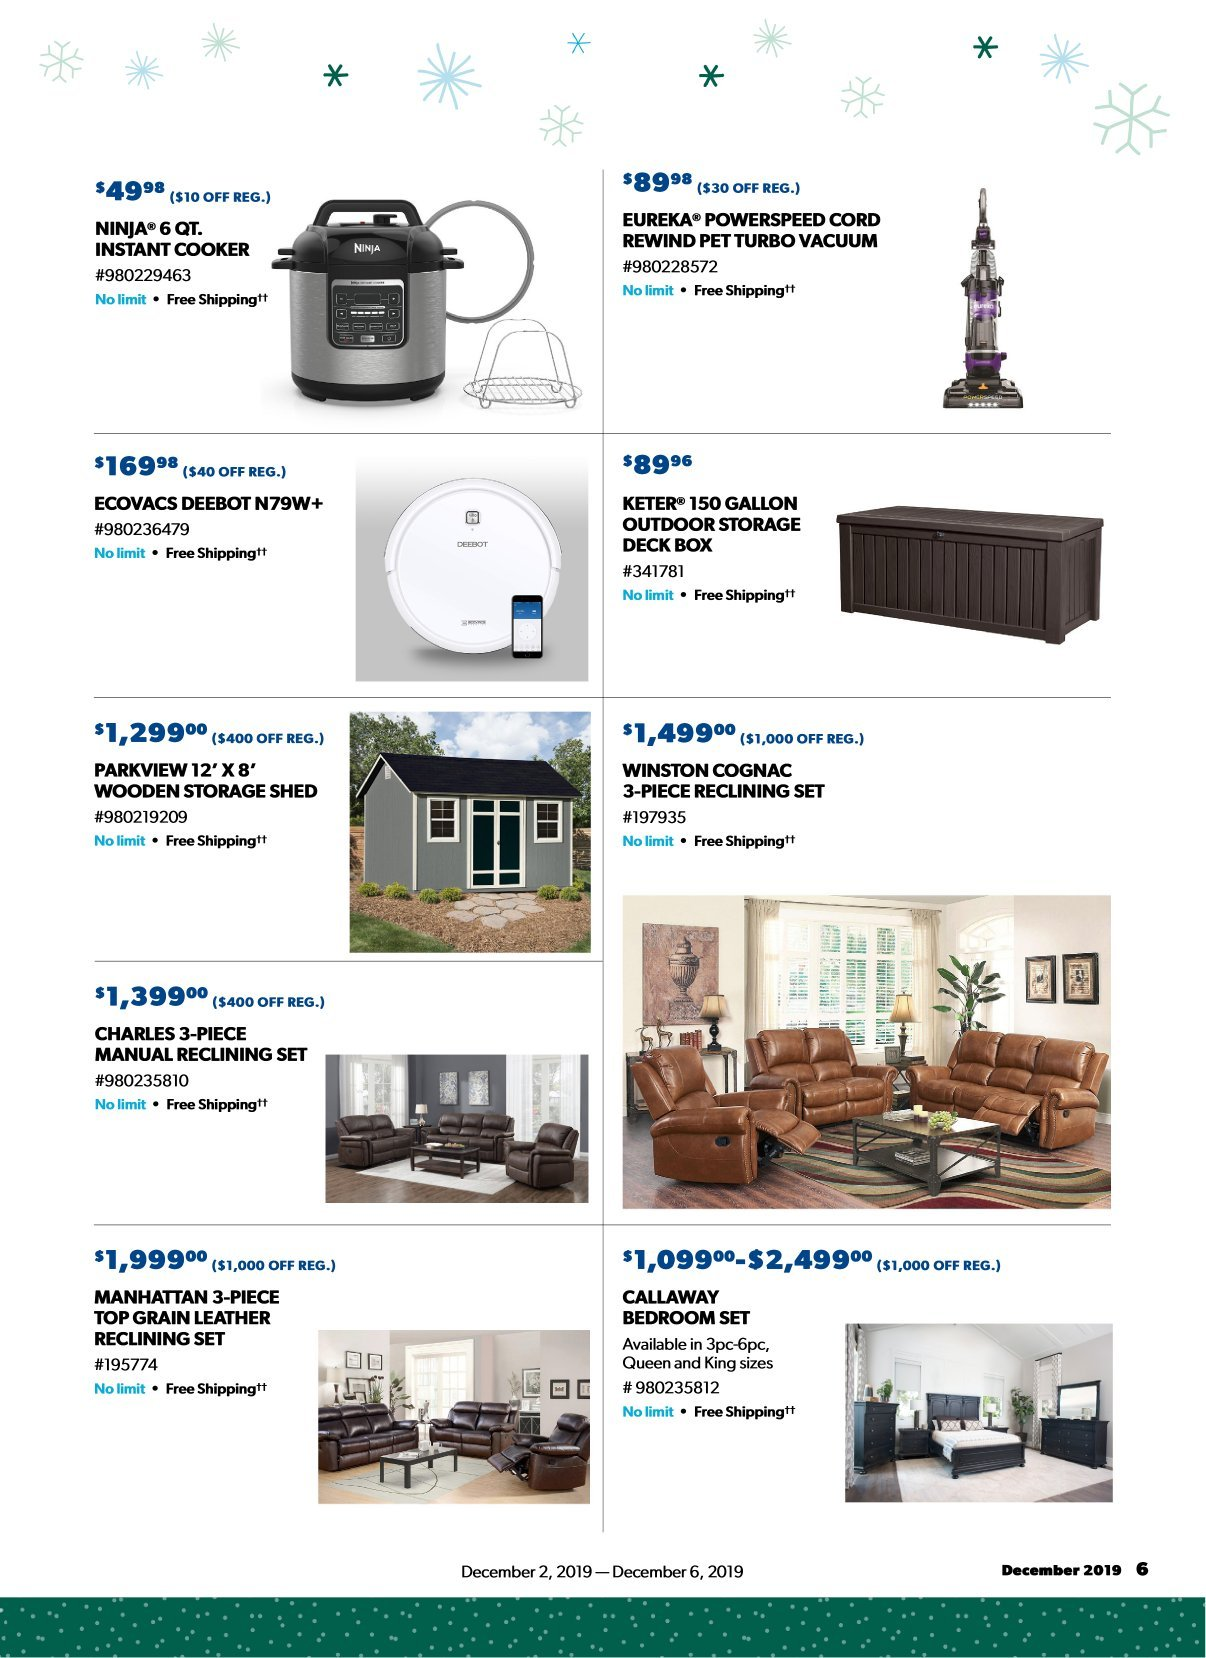 Sam's Club Cyber Monday 2019 Page 5